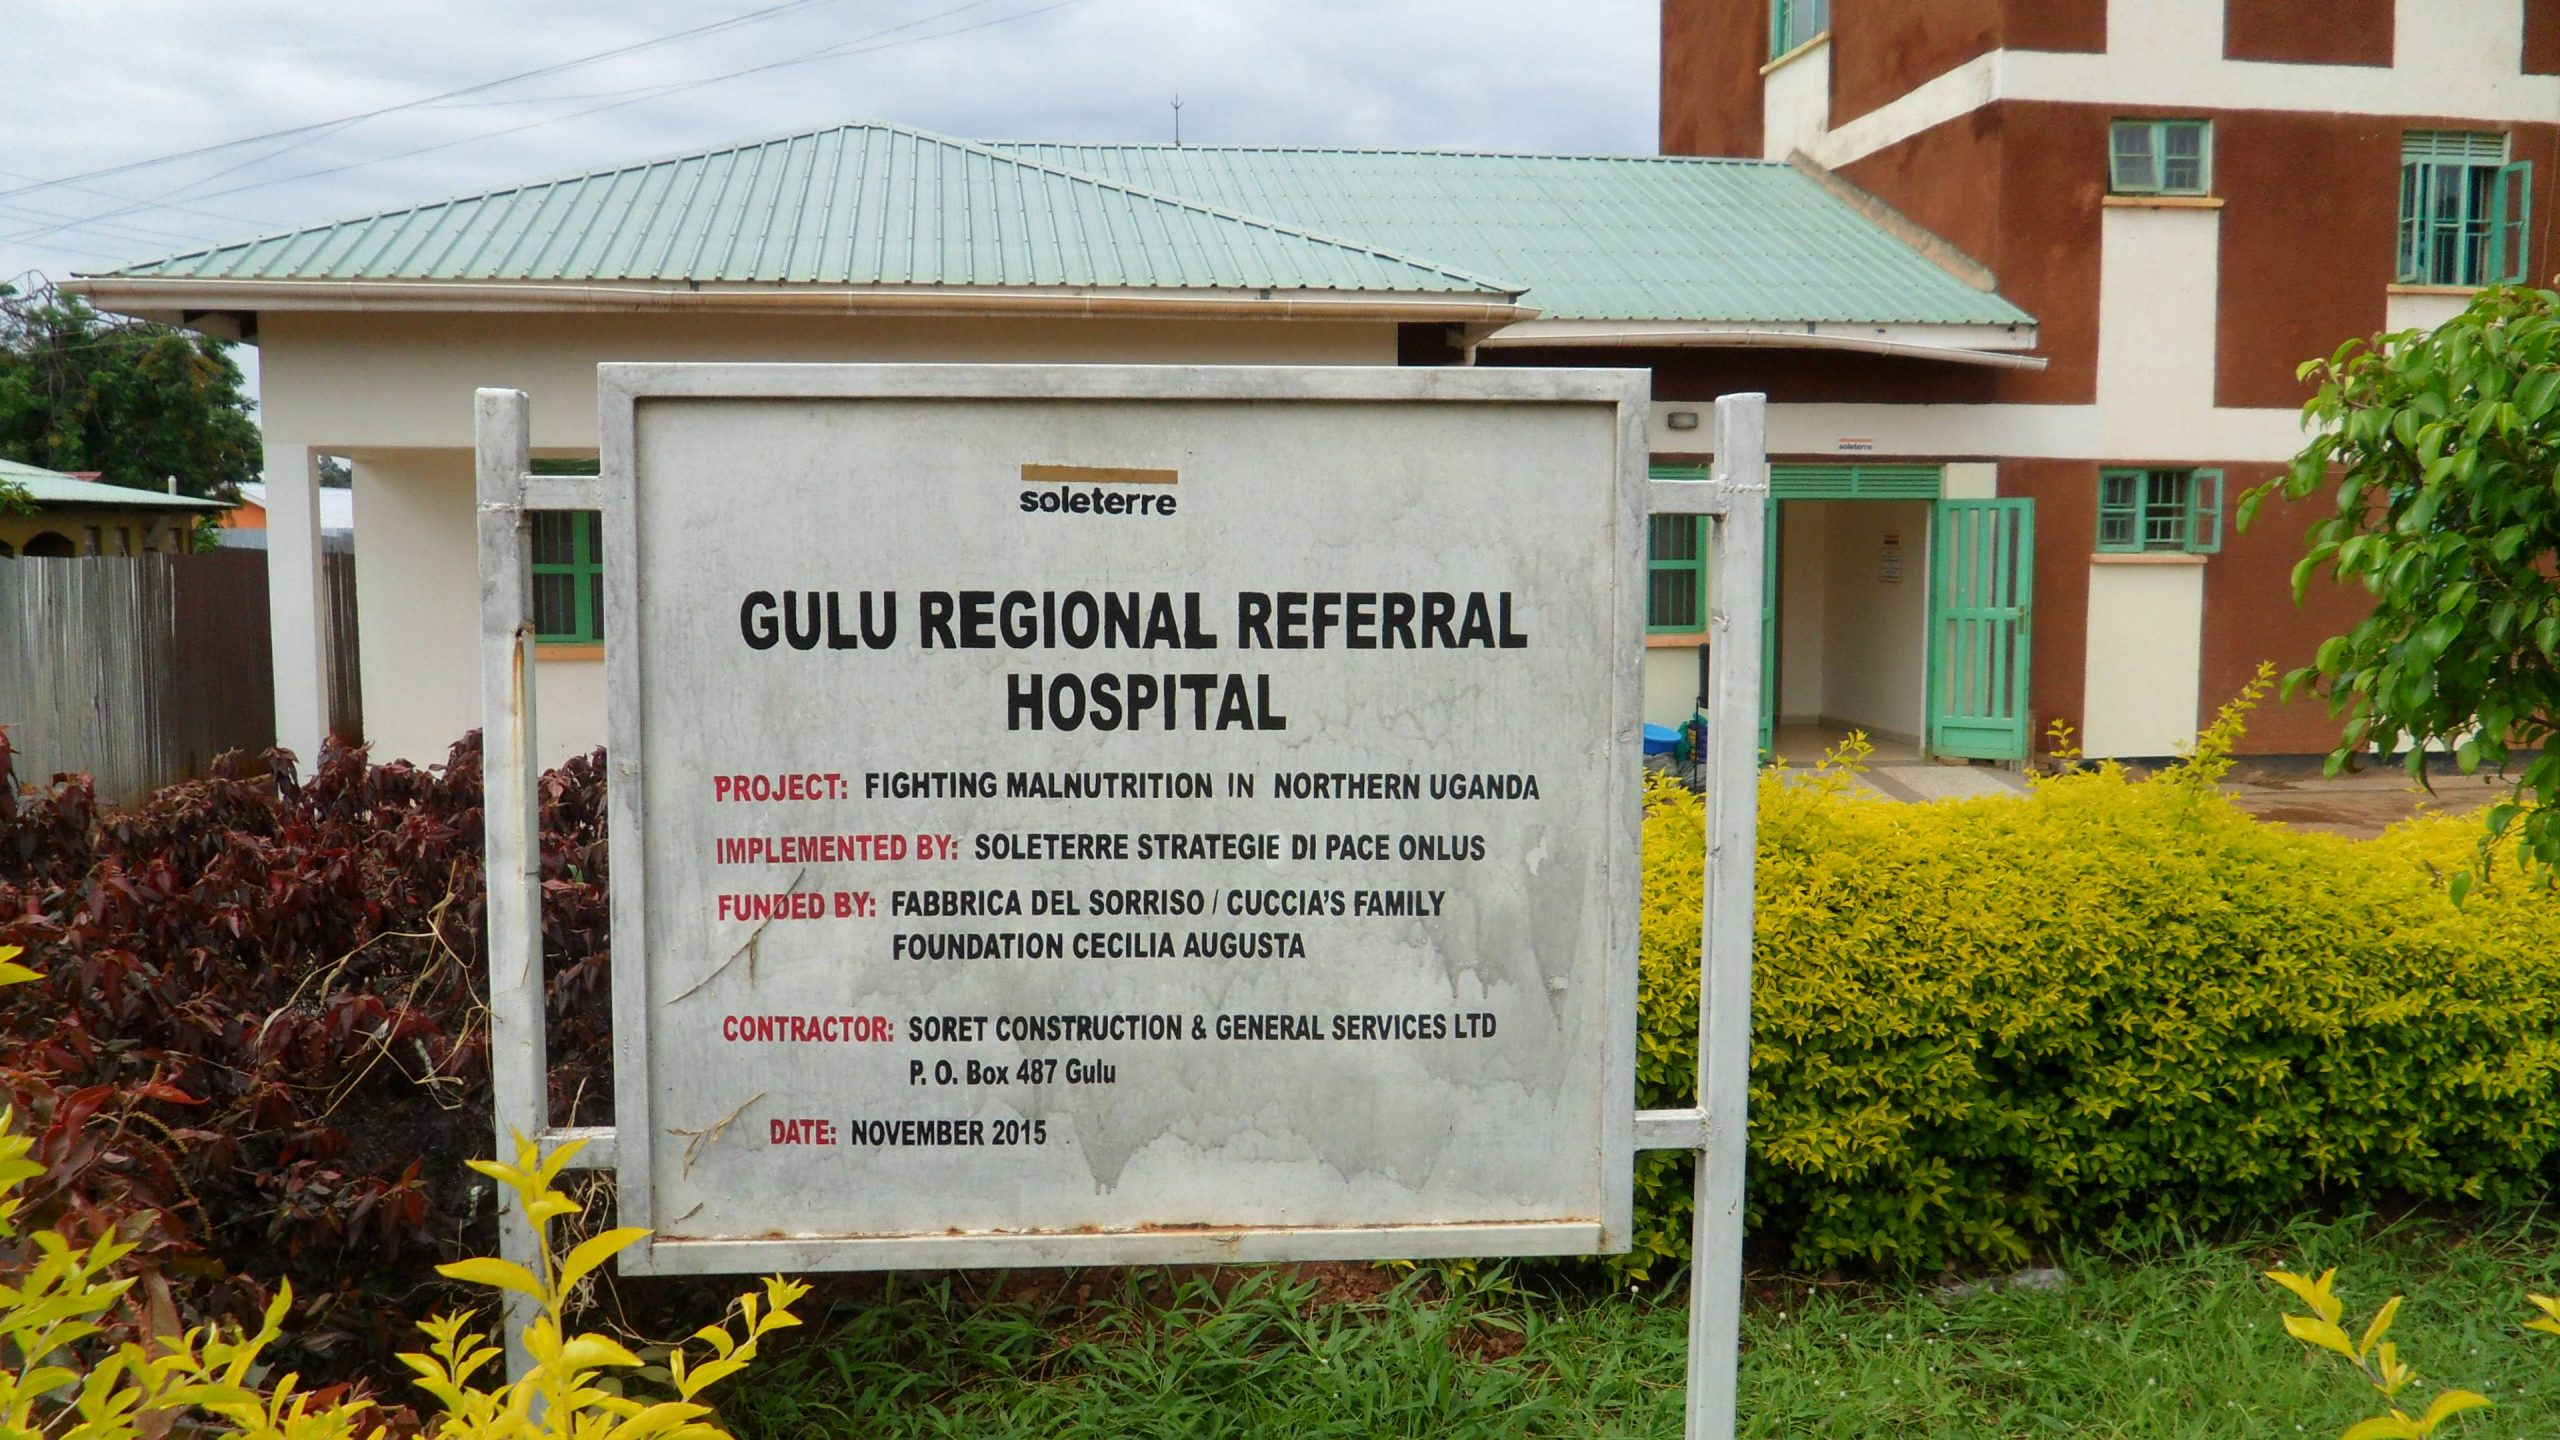 100 Pupils and Students Abort In Gulu